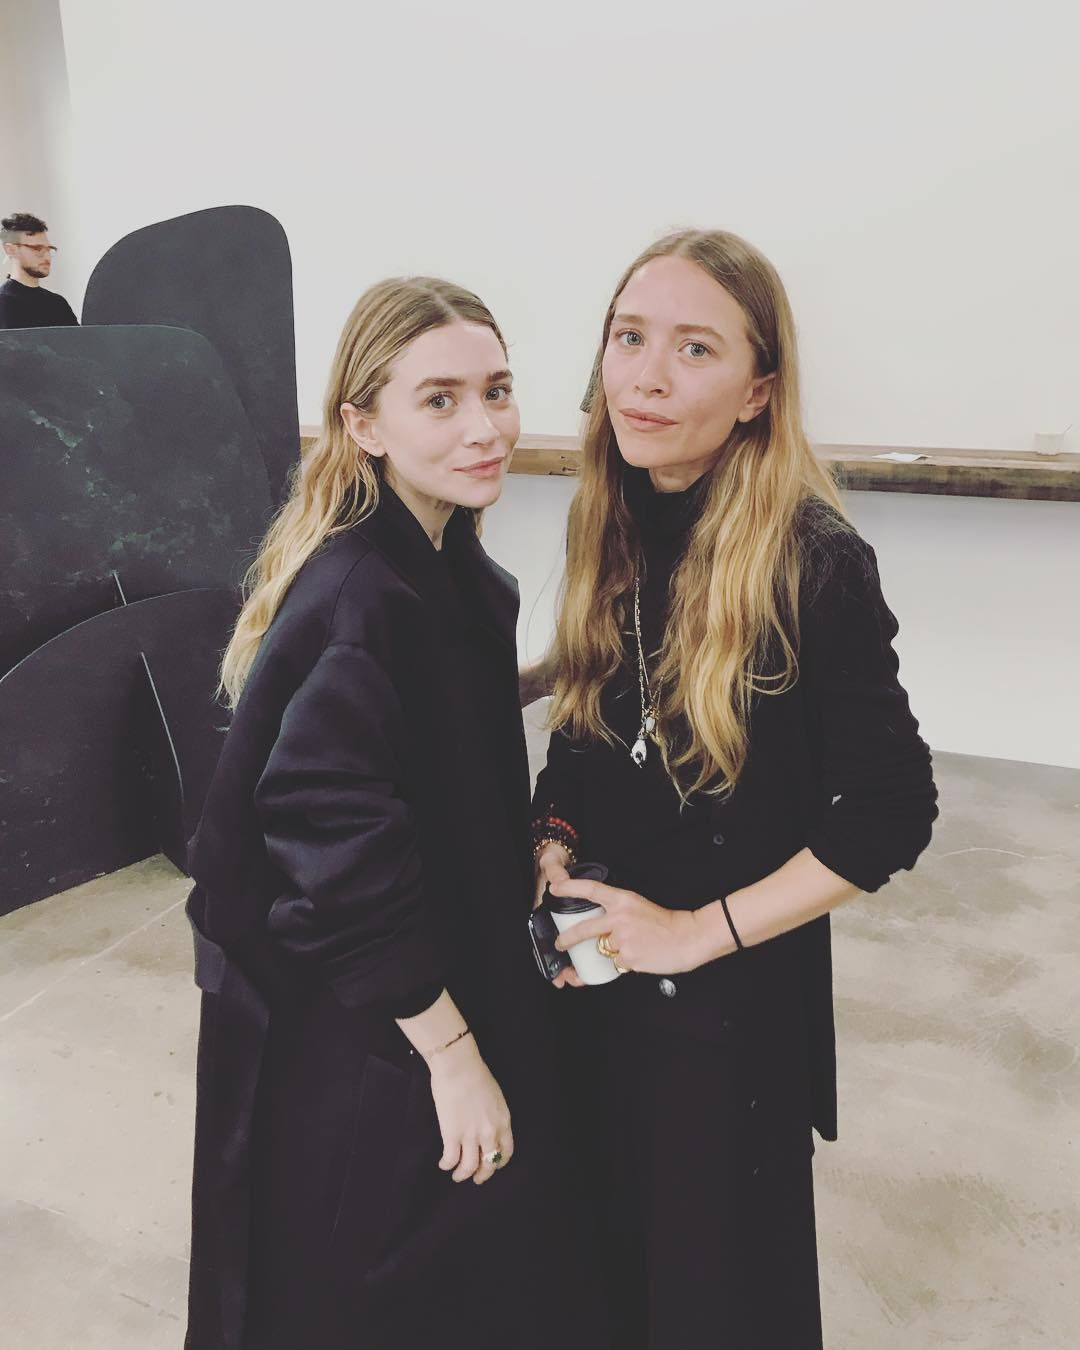 ashley and marykate olsen 2018 chic pinterest